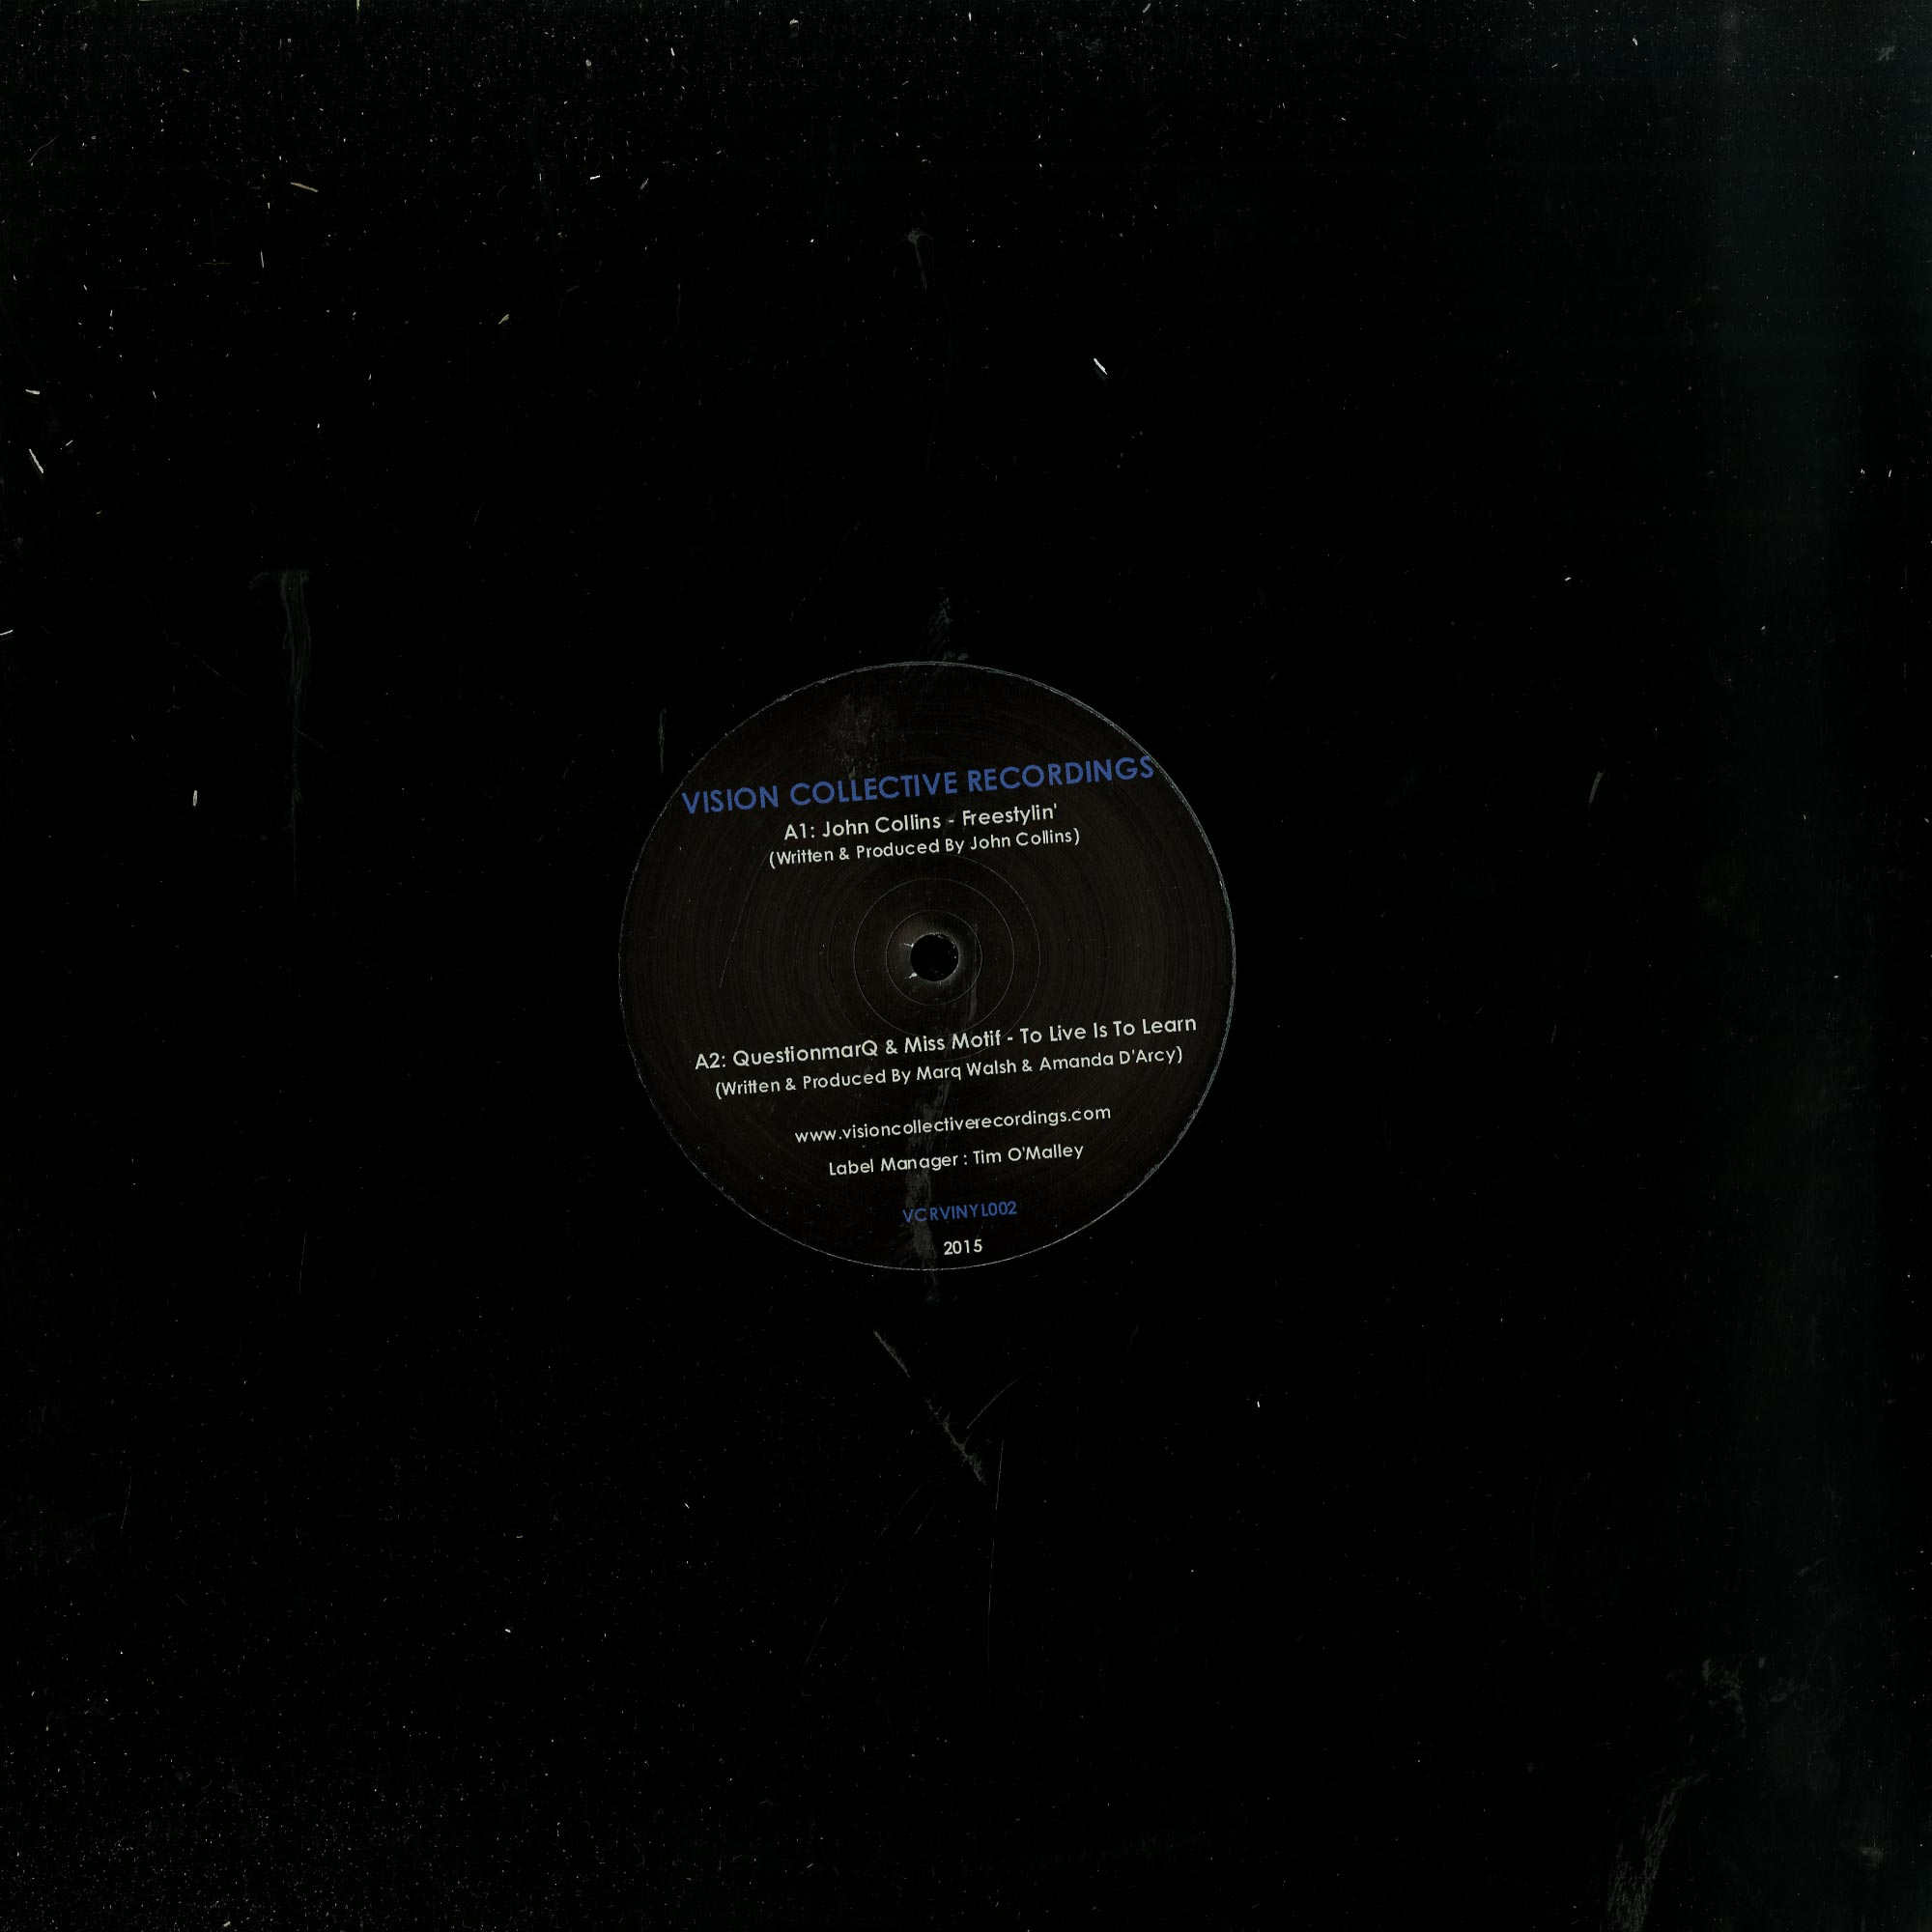 John Collins. Questionmarq. Mick Verma - THE PERCEPTION EP